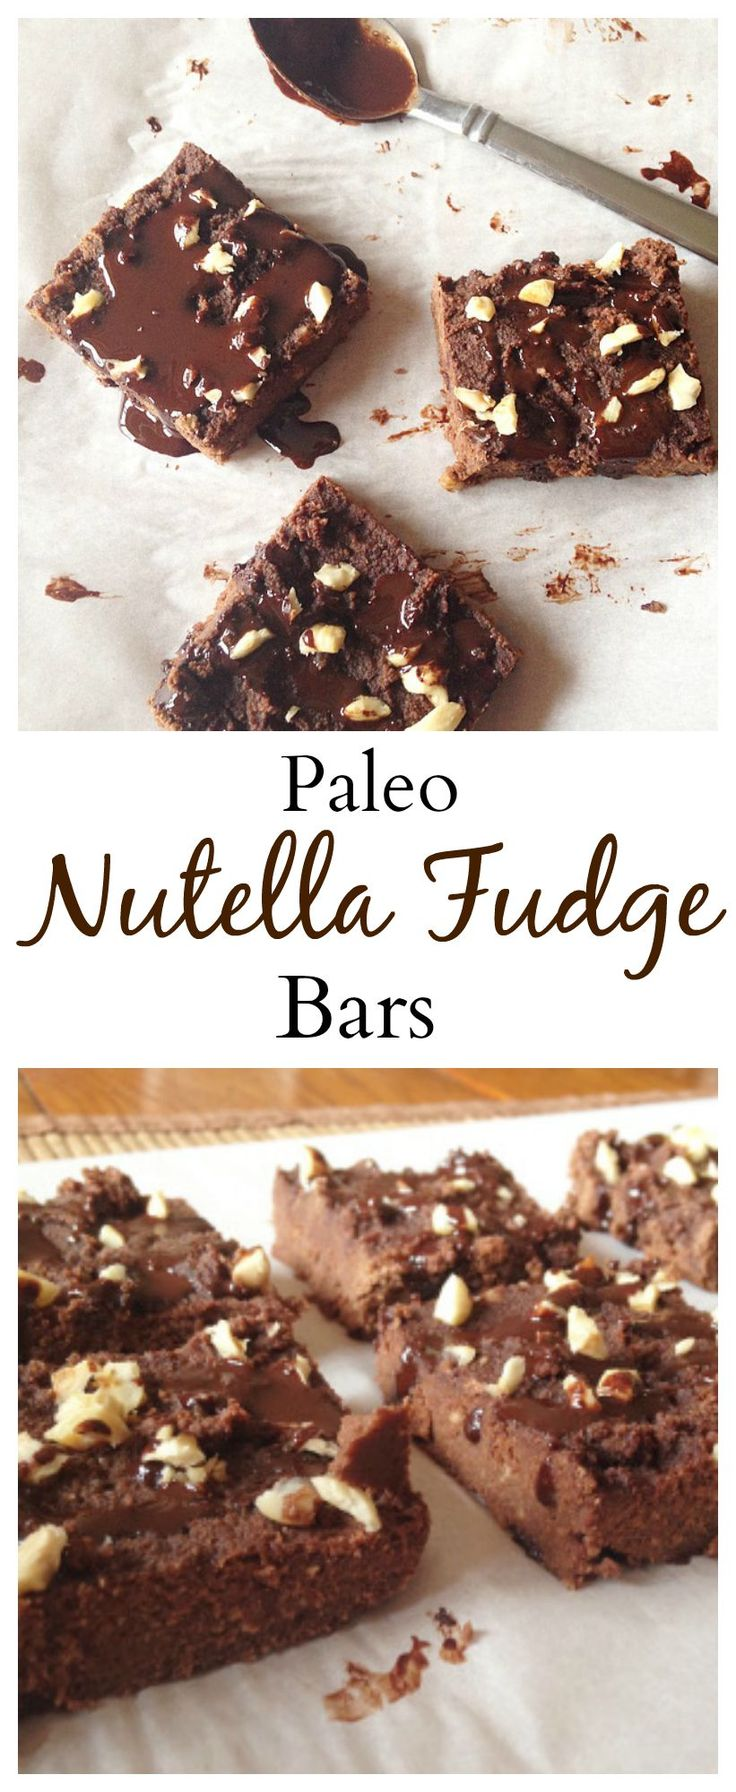 "The blogger wrote.""These #paleo Nutella Fudge Bars are unbelivable! They taste exactly like a nutella and are dense and fugdey! YUM!"" #healthy #vegan"